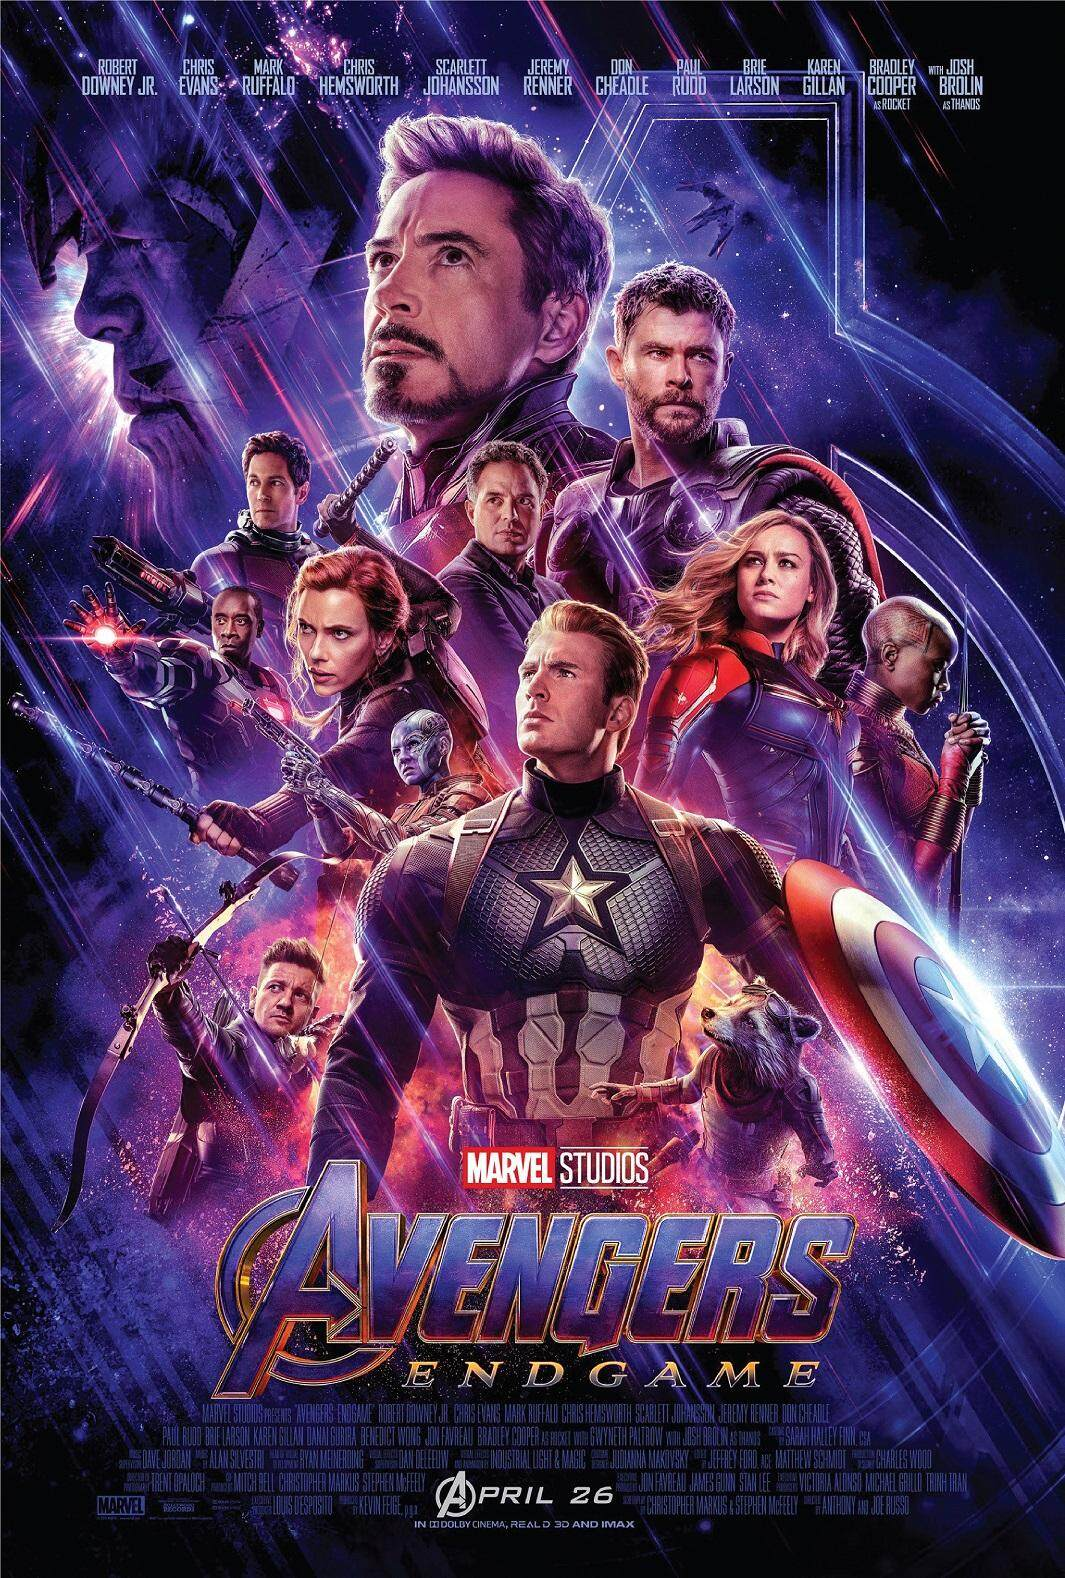 Marvel Avengers 4 League Endgame Movie Poster Wallpaper High Quality Synthetic Paper Decorative Painting HD